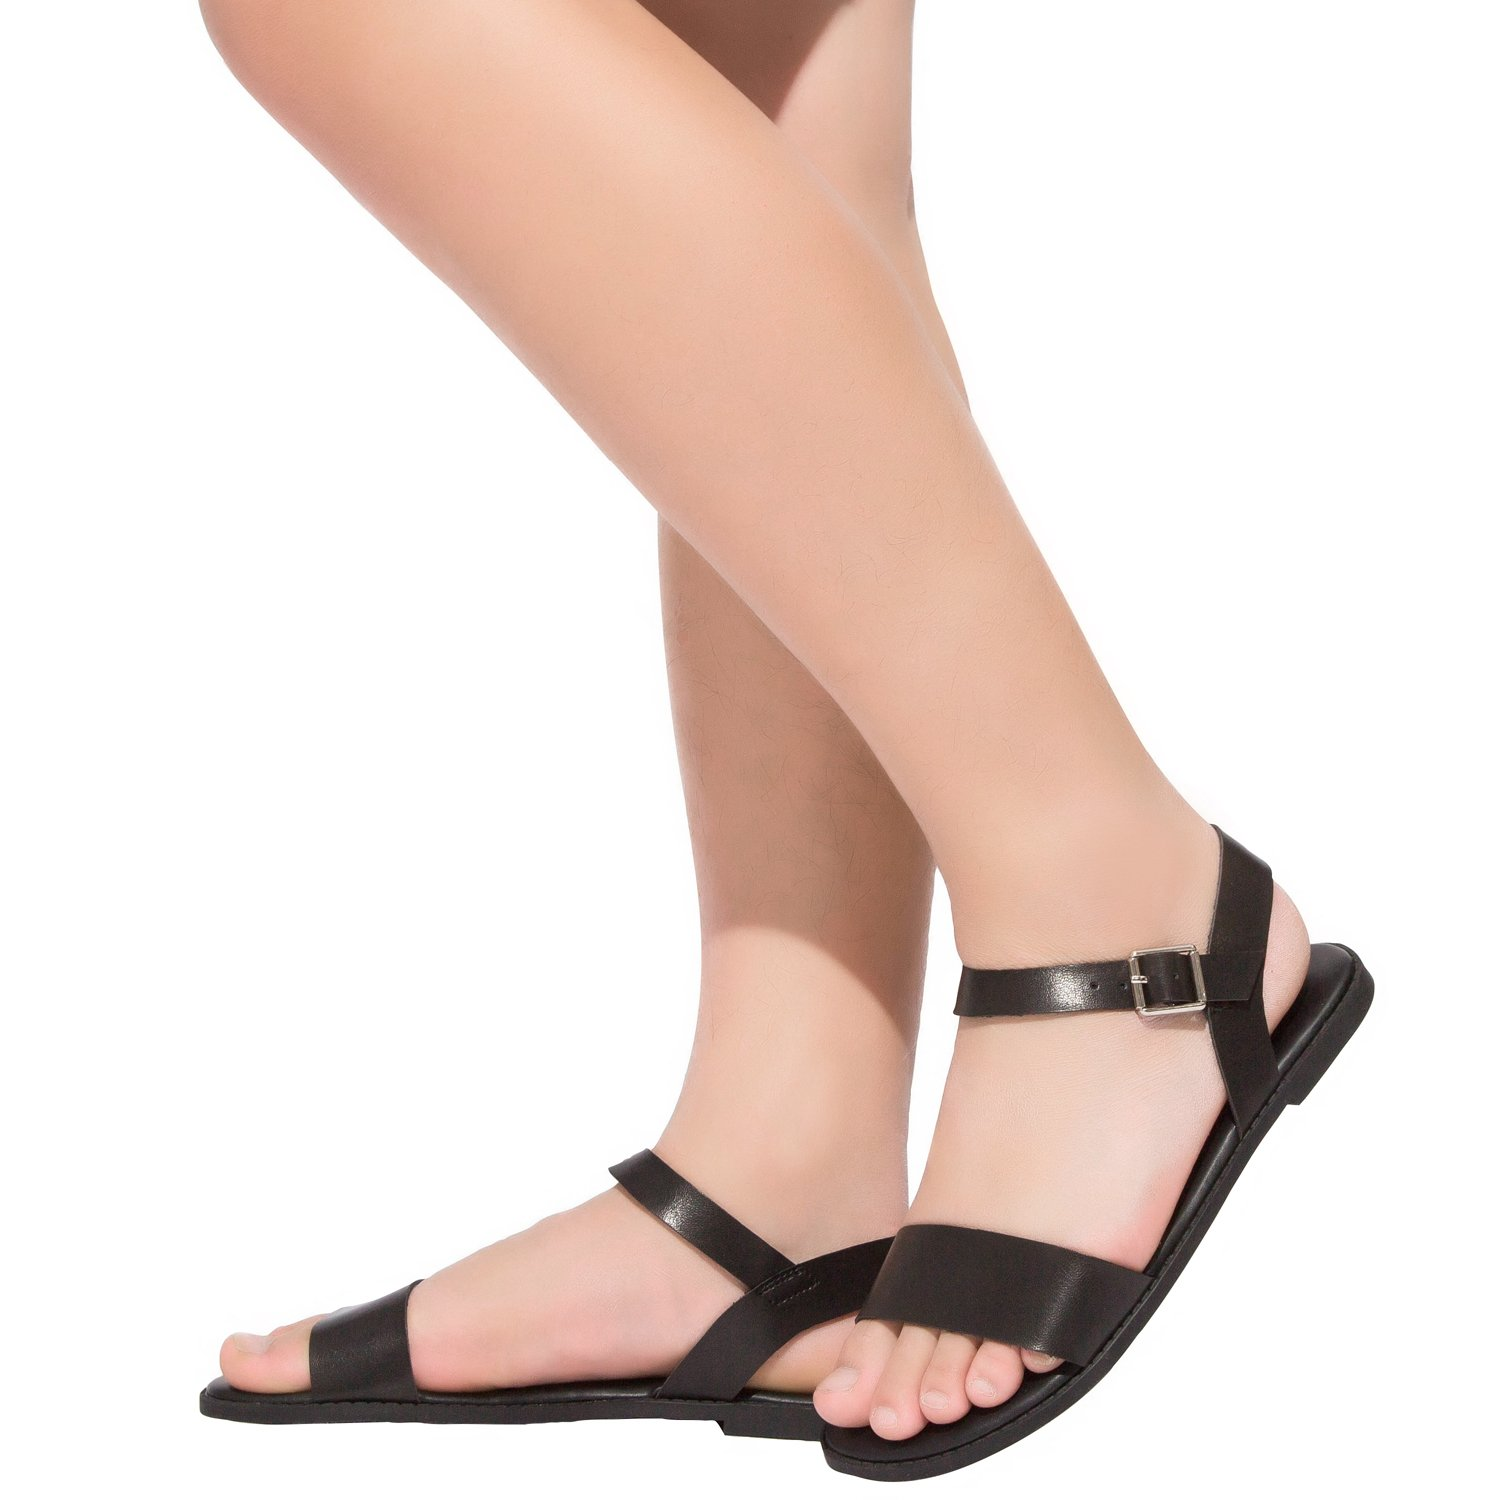 Aukusor Womens Wide Width Flat Sandals one Band Open Toe Ankle Strap Flexible Summer Shoes 180307 Black 8ww